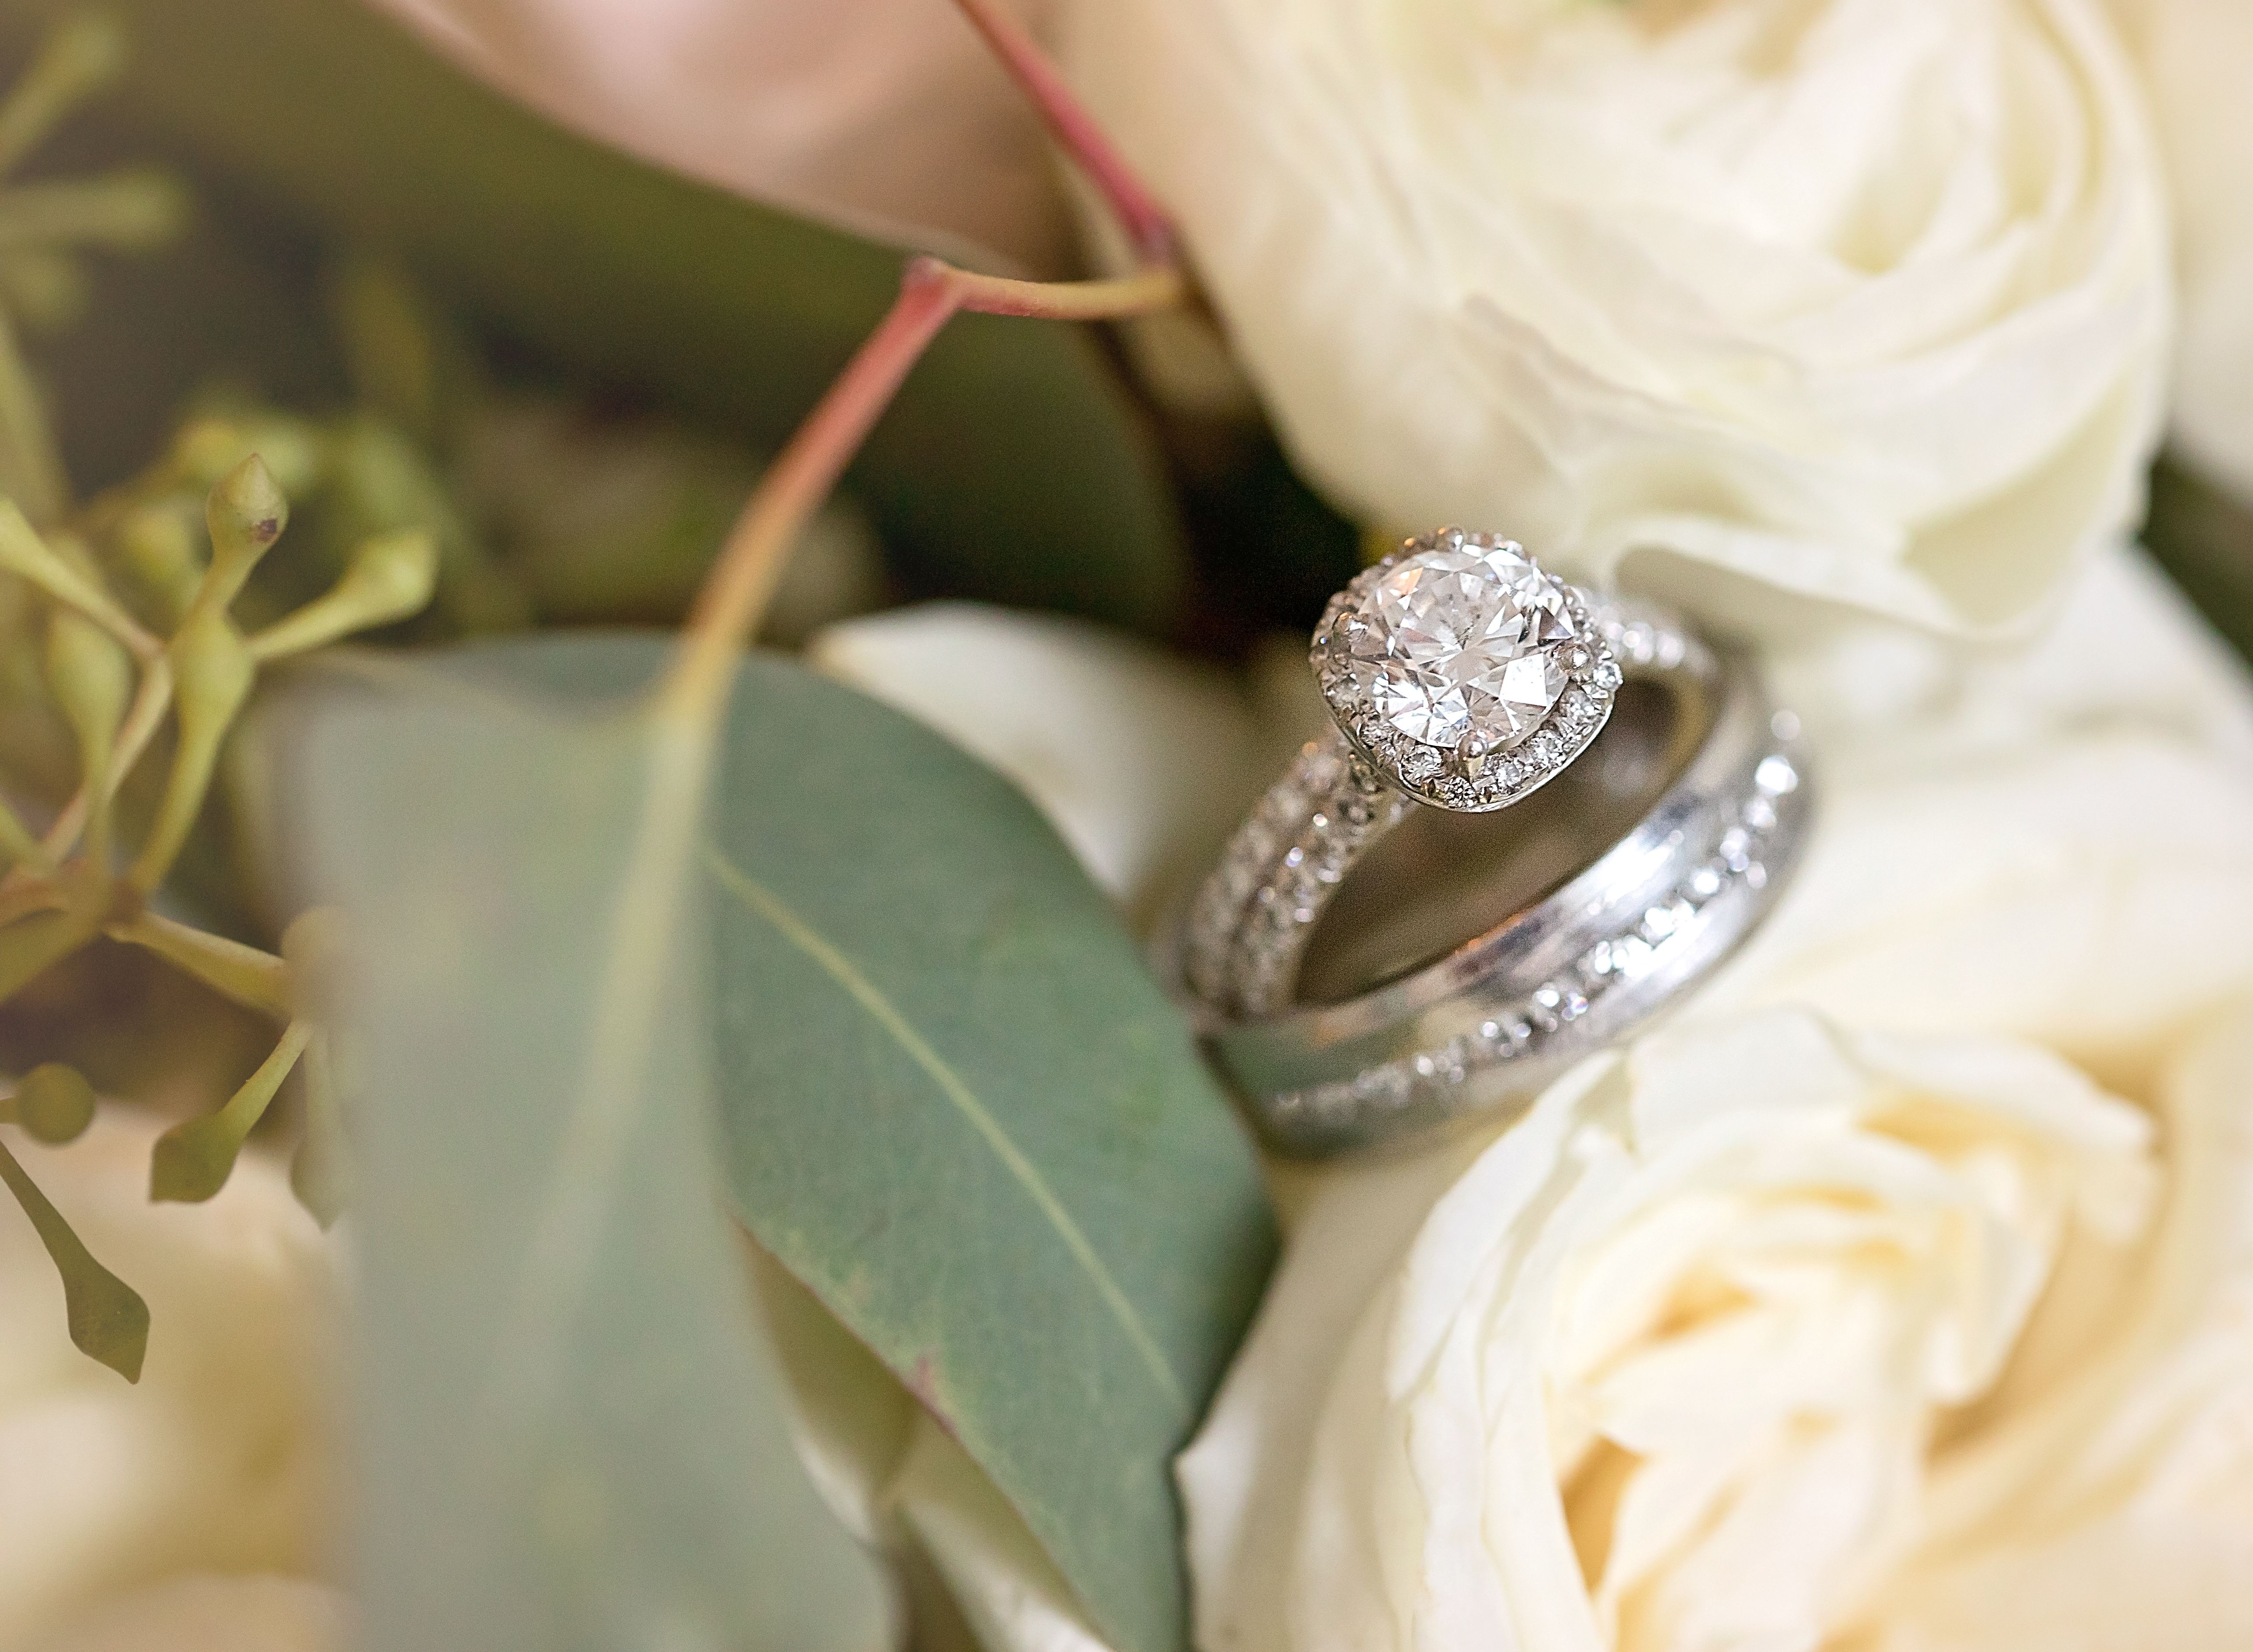 A wedding ring with a round brilliant diamond surrounded by smaller crystals is nestled in between white roses.